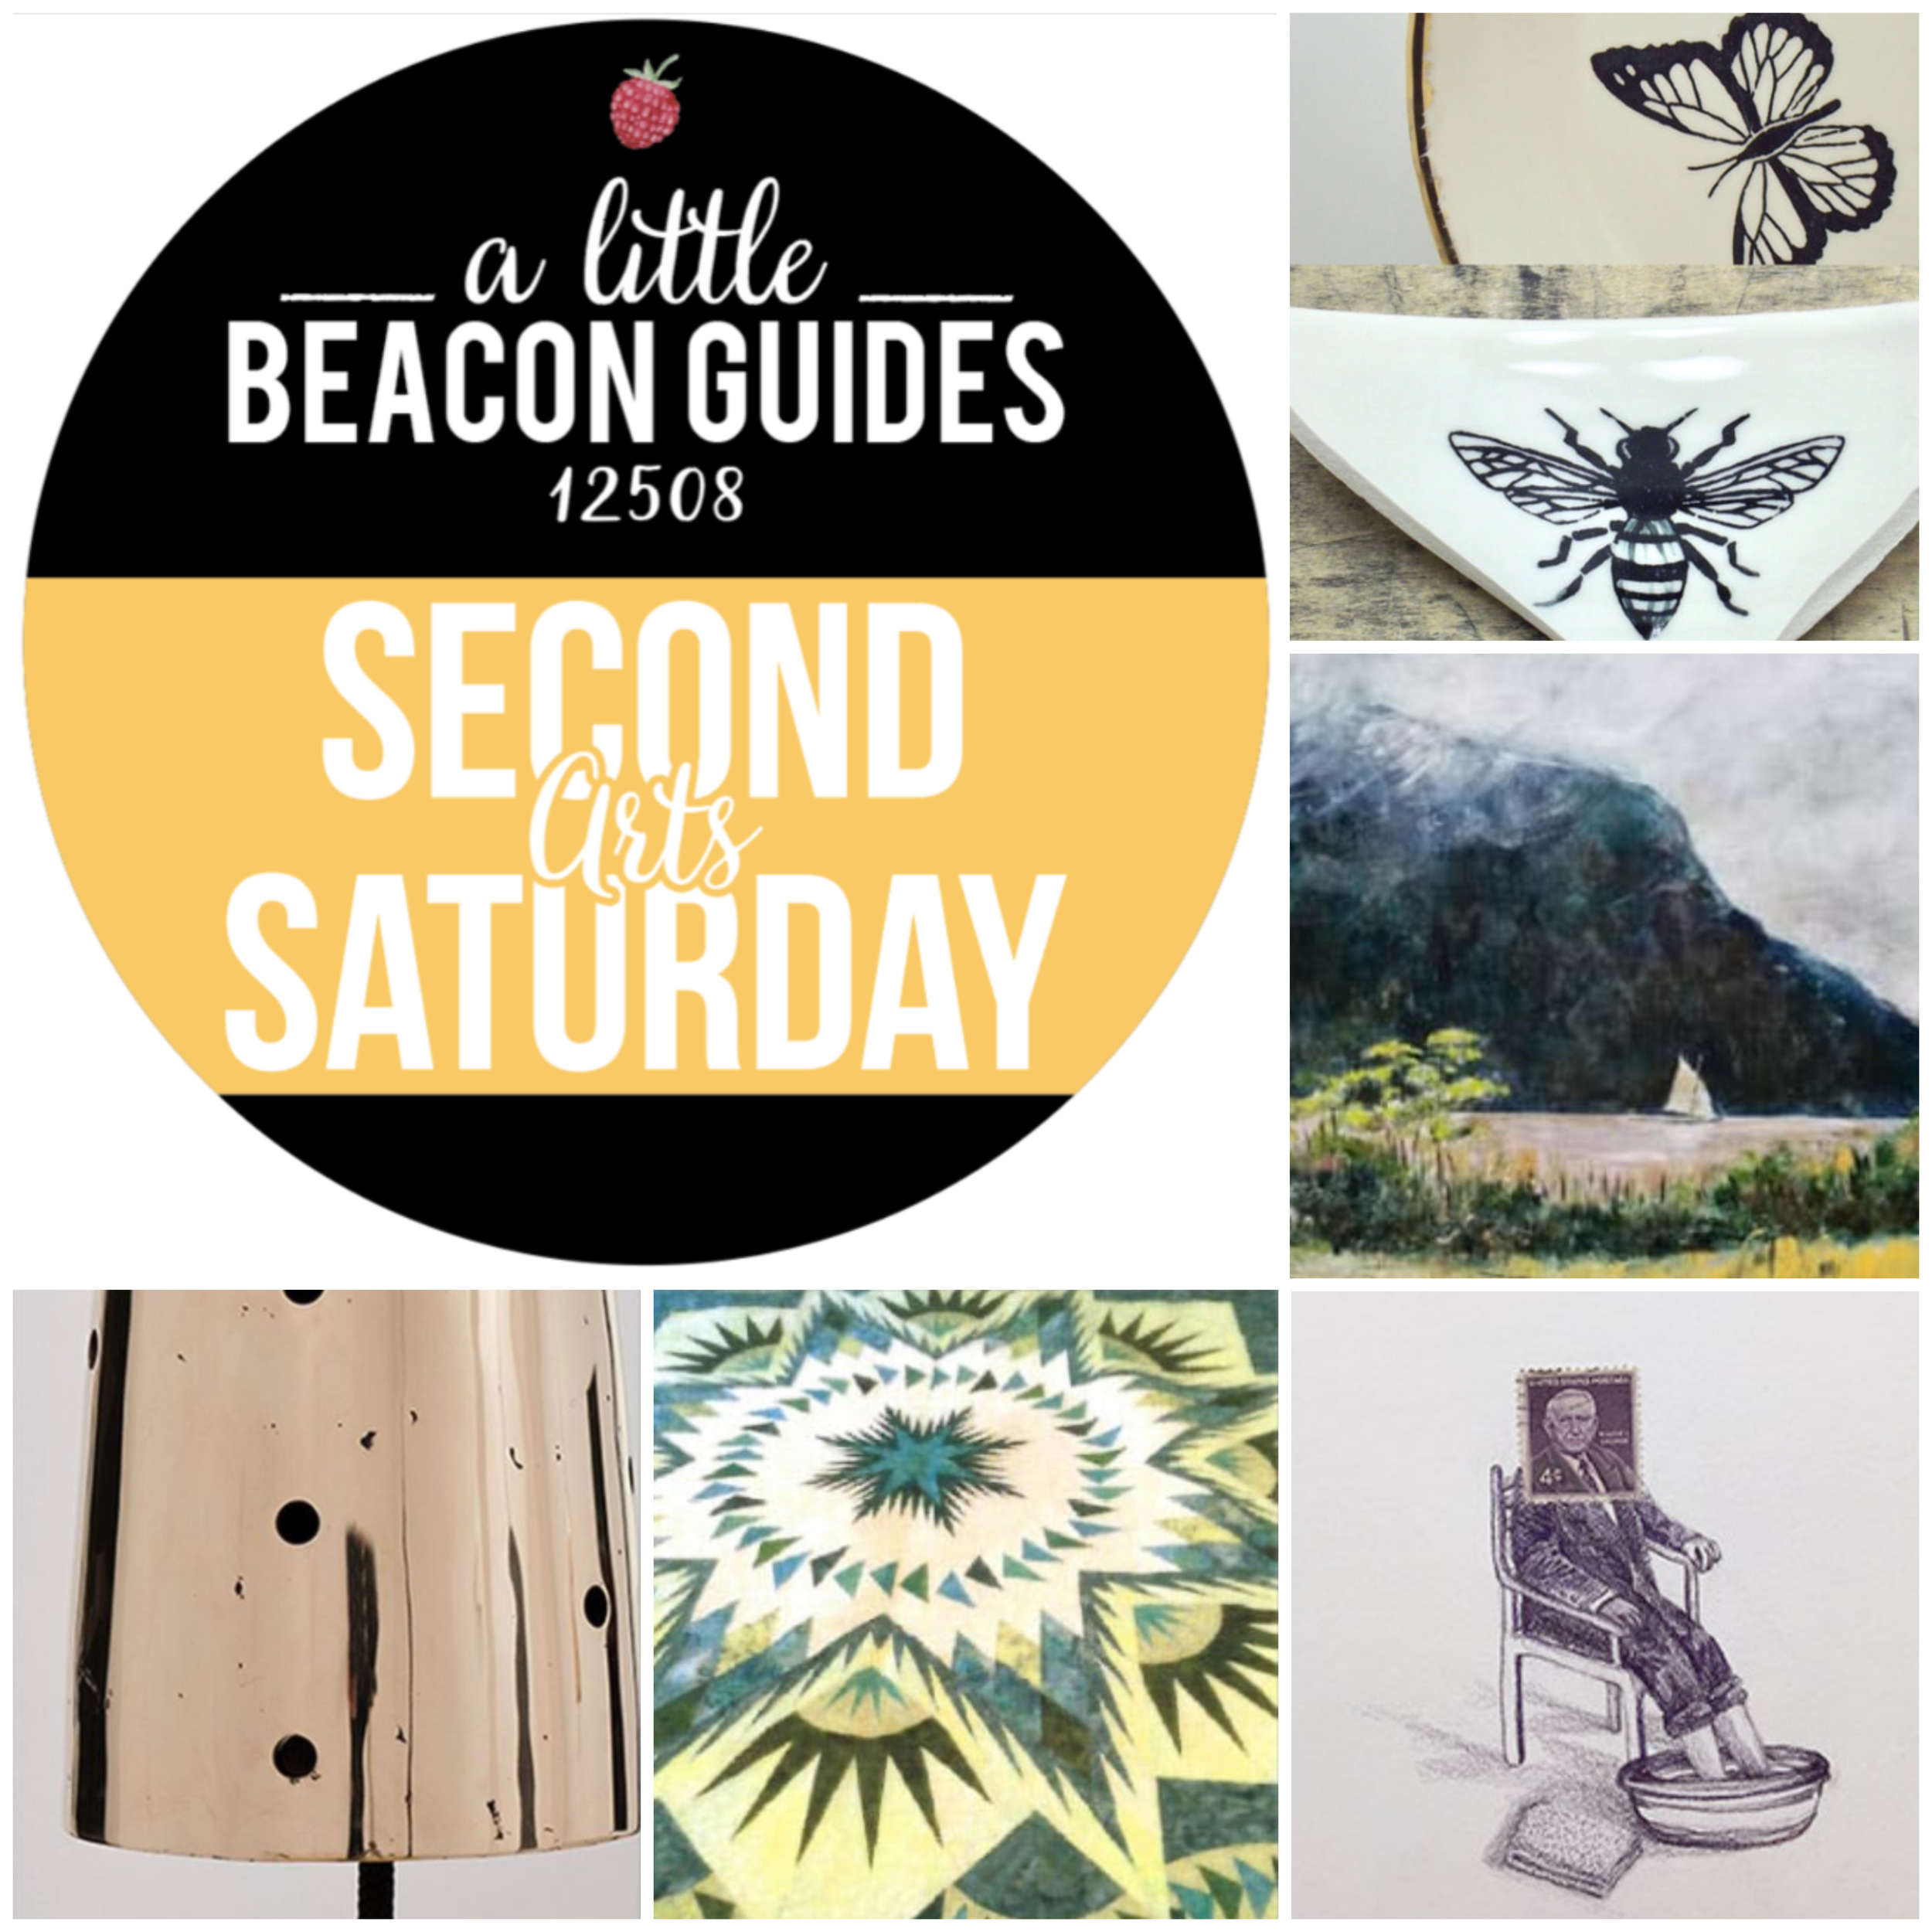 Art gallery openings in Beacon, NY, for August 2019 include, clockwise from top right: Faith Adams at Bau Gallery; Steve Duffy at RiverWinds Gallery; Andrea Moreau at Hudson Beach Glass; Timeless Art of Quilts at the Howland Cultural Center; and Davina Semo at Parts & Labor Beacon.